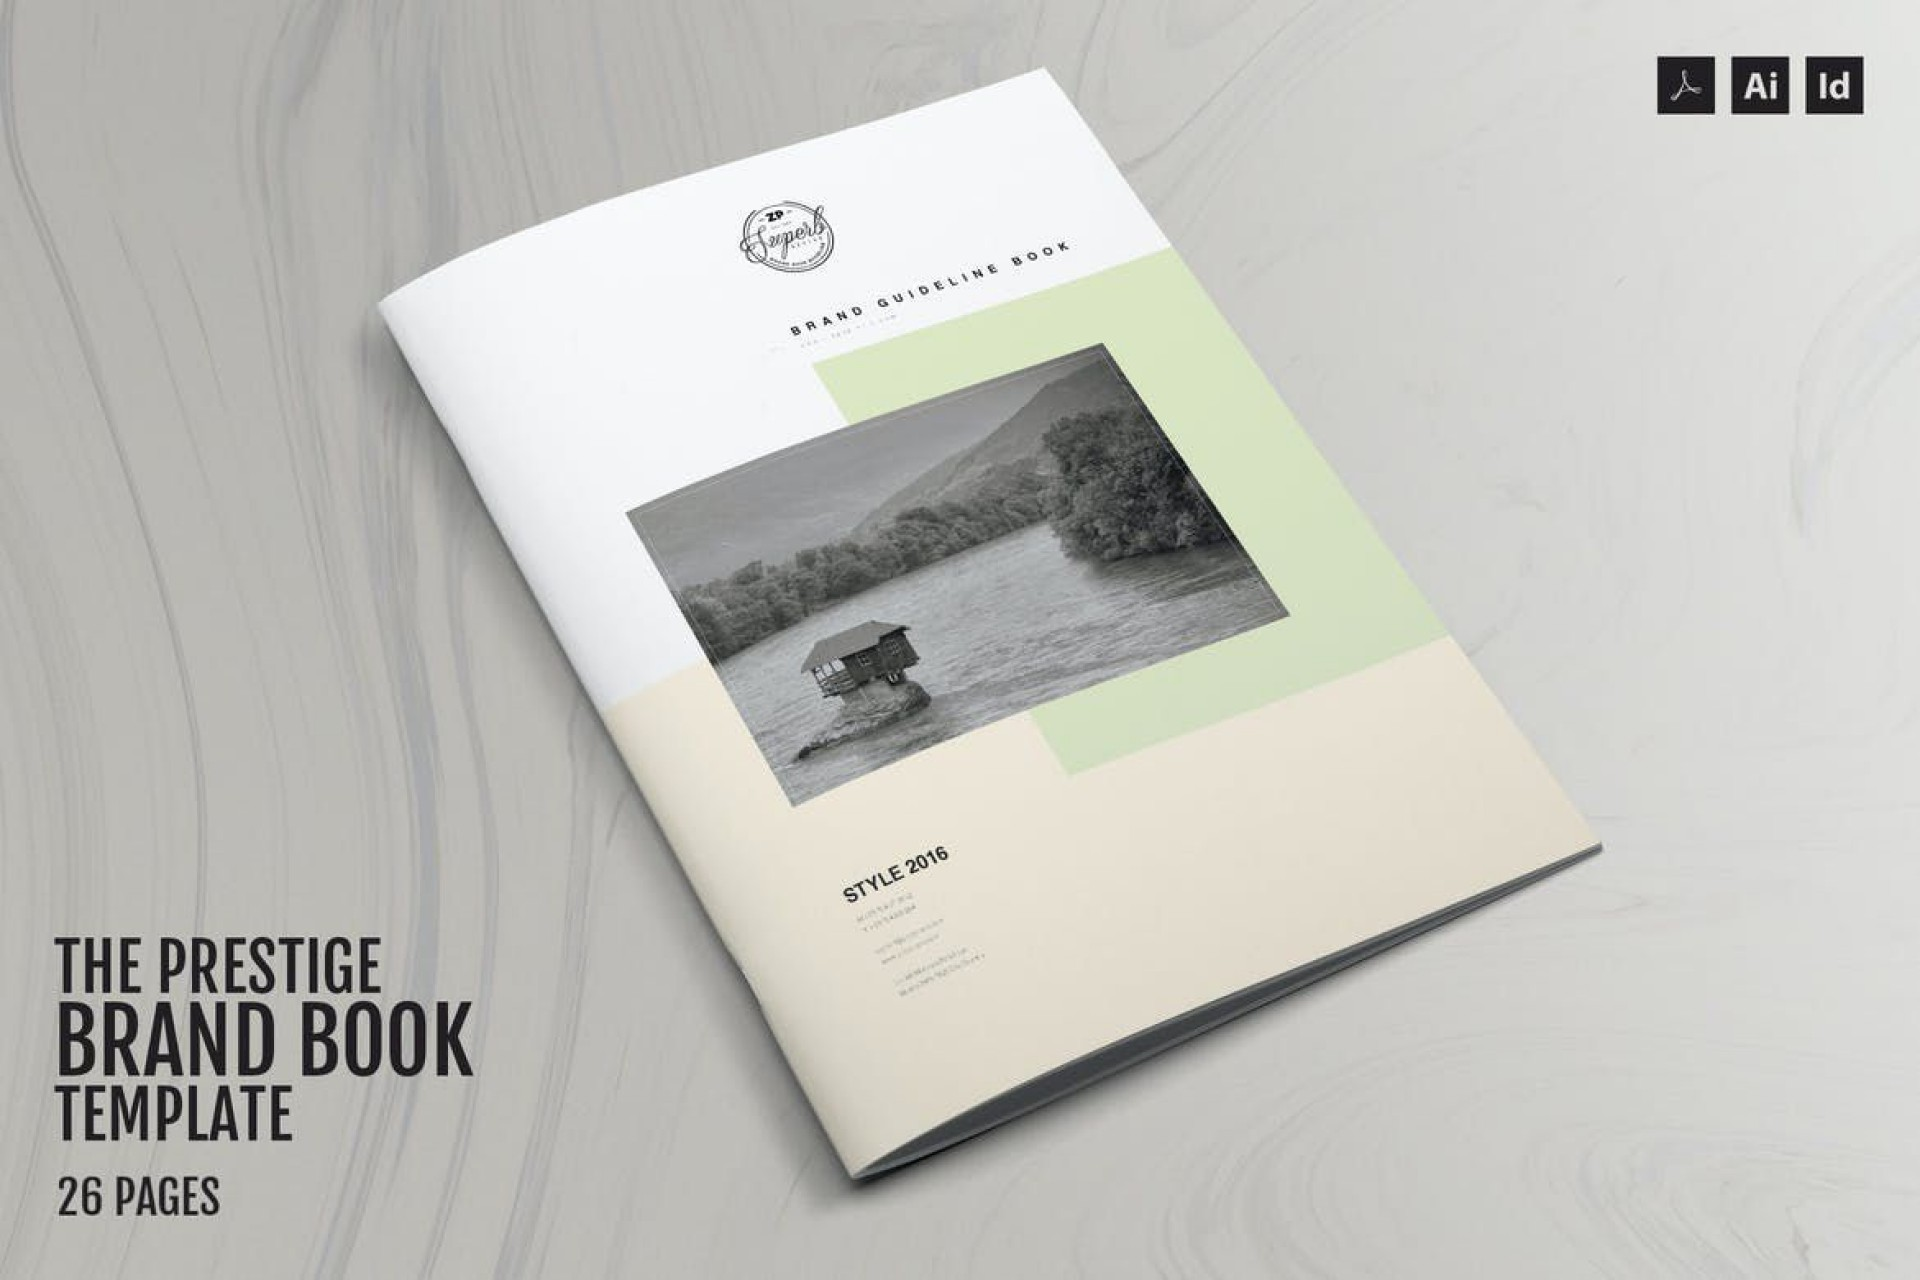 008 Frightening Free Indesign Book Template Download Image  Cs6 Adobe1920